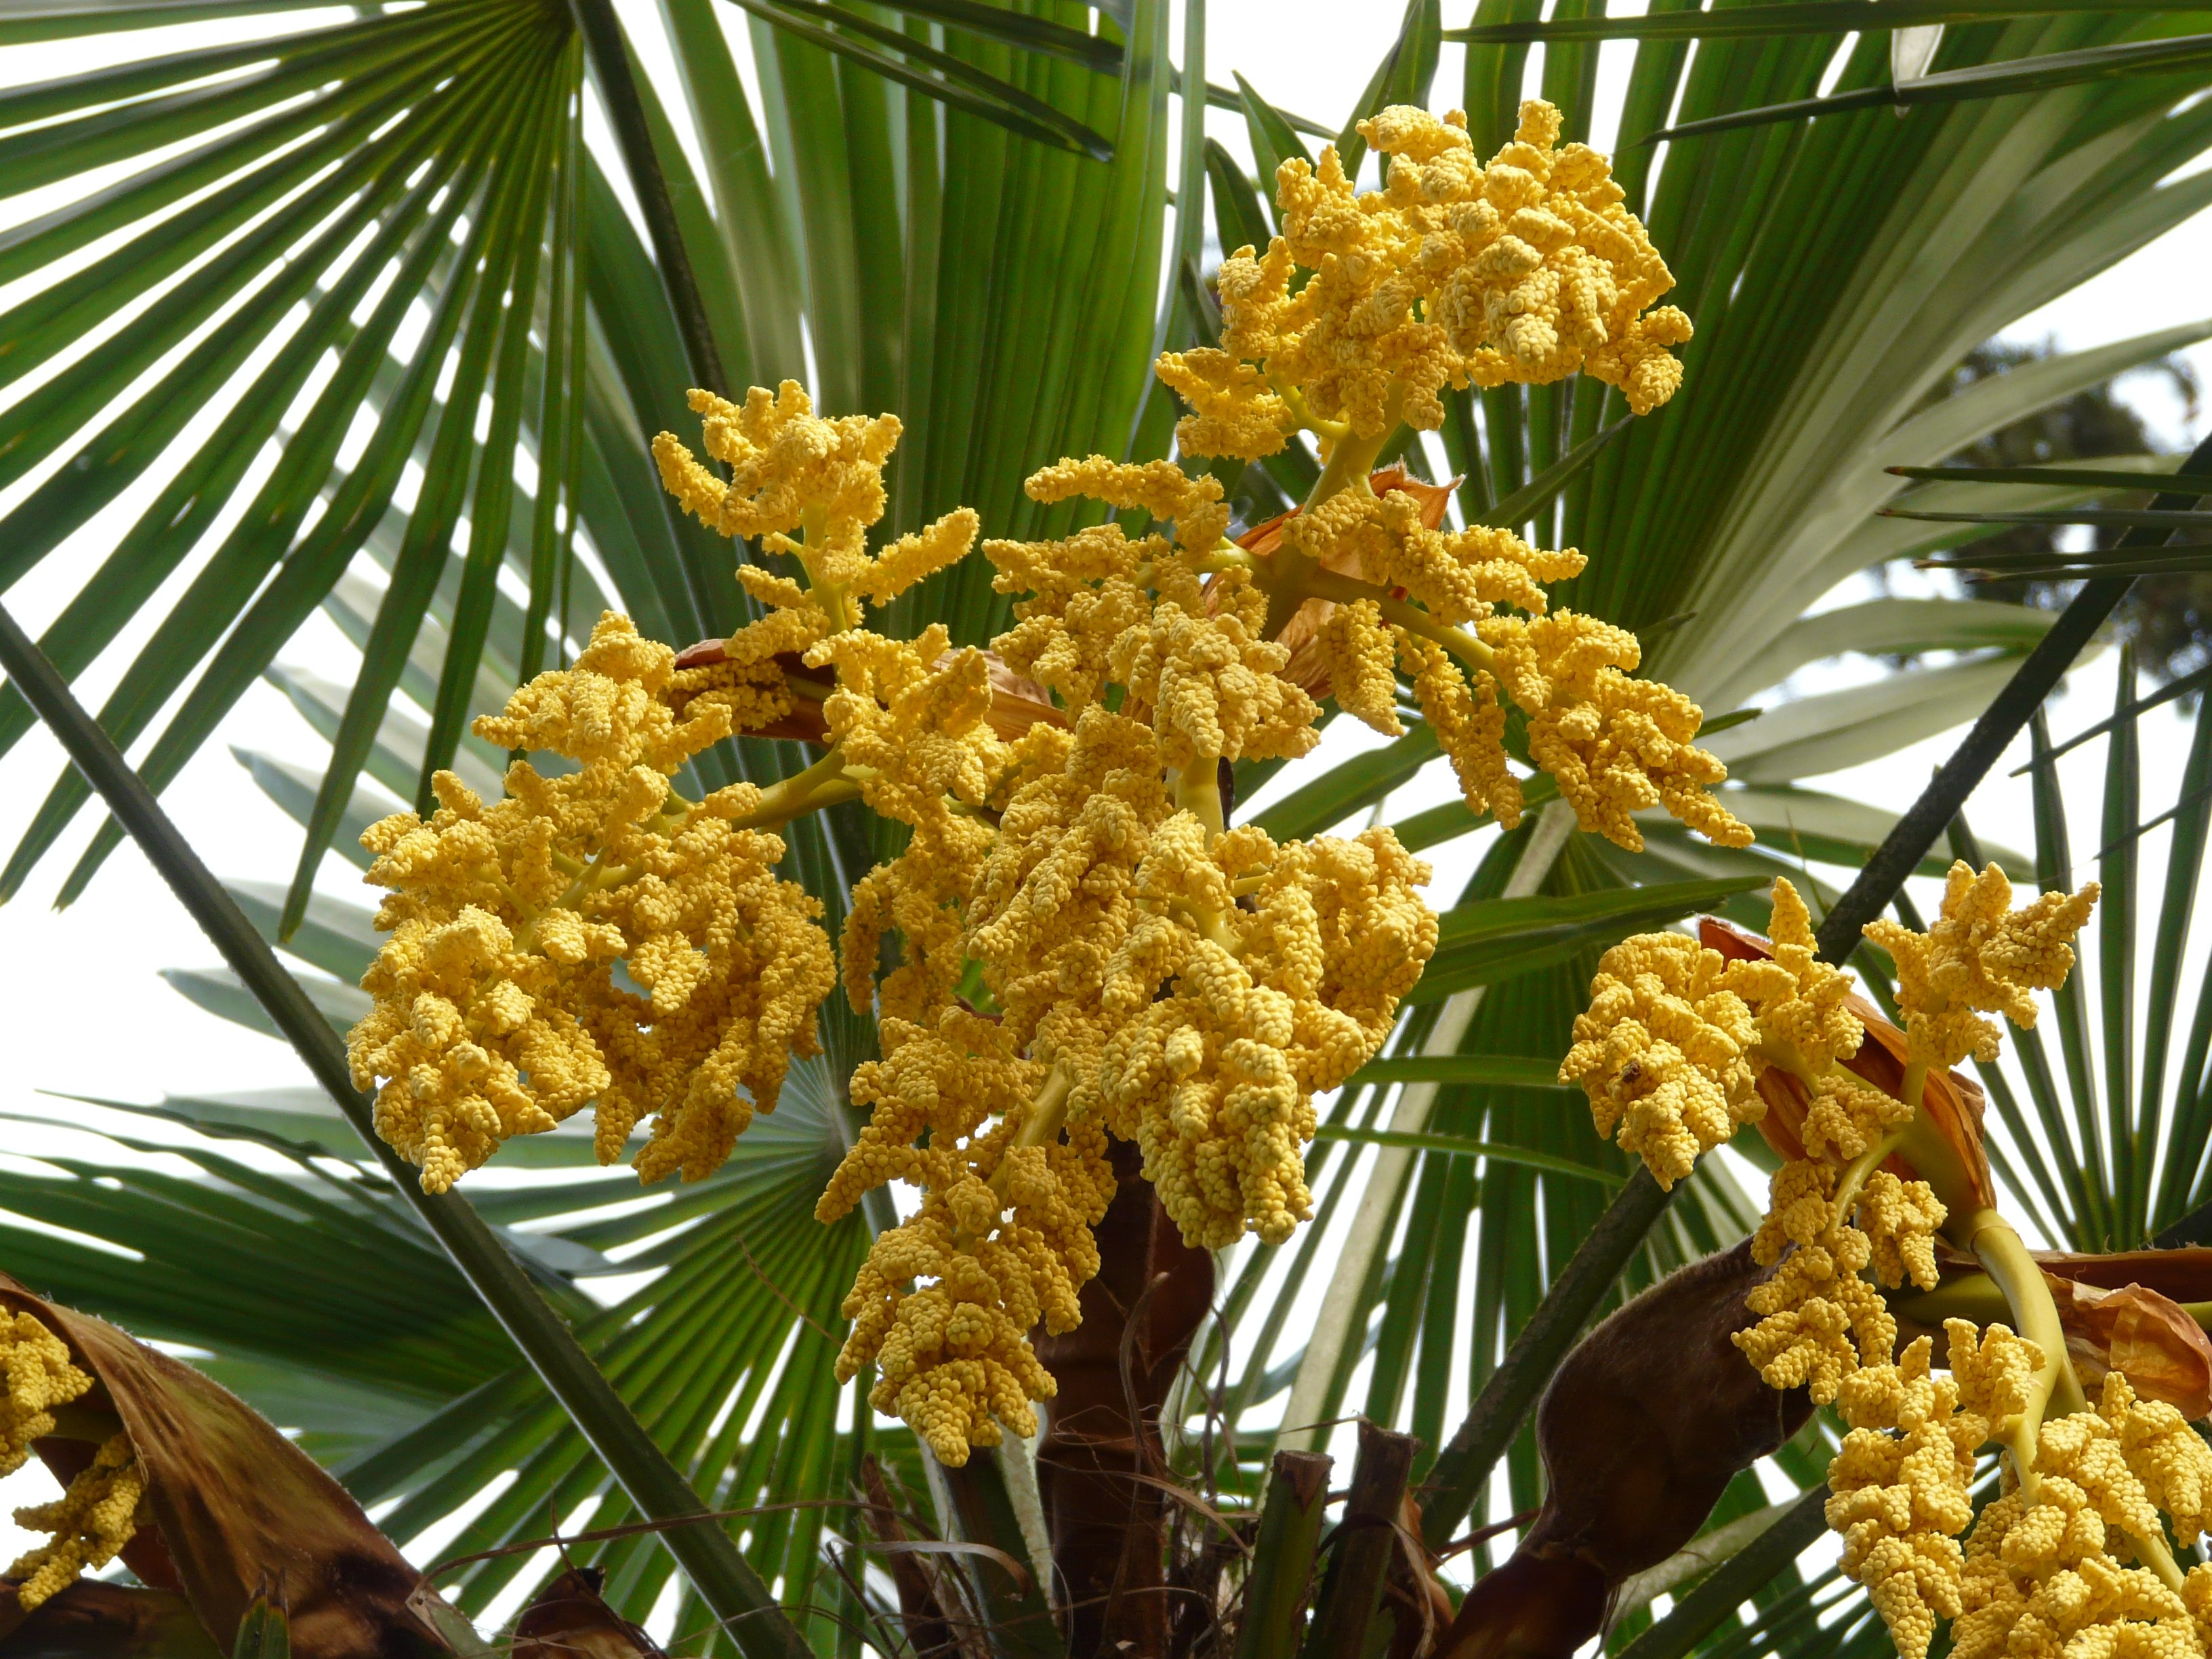 Bottom View On The Yellow Flowers Palm Tree Free Image